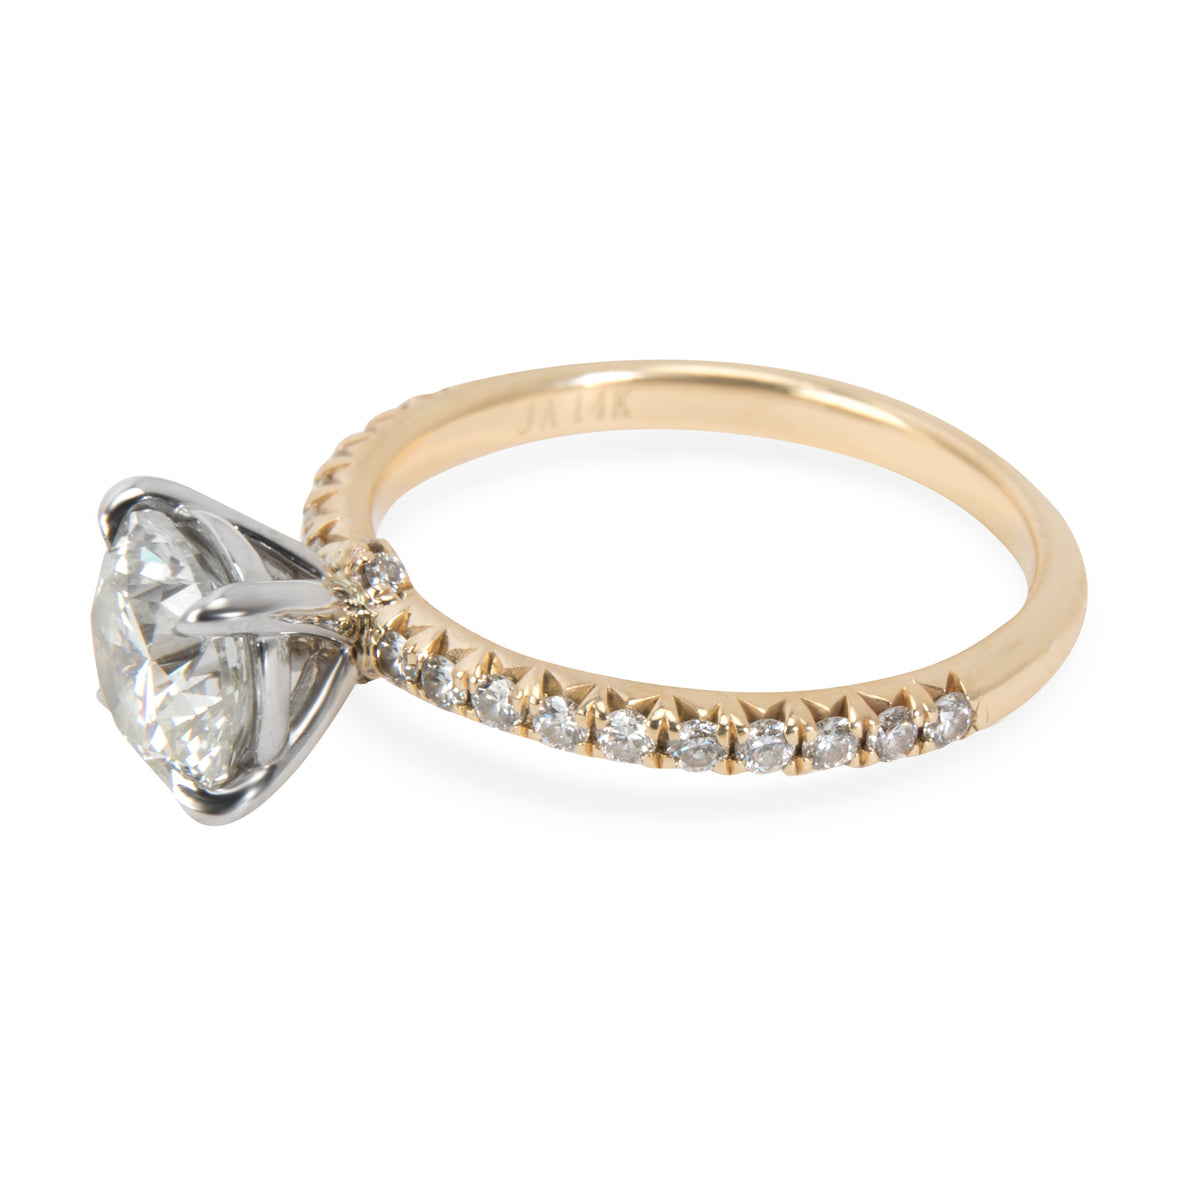 James Allen French Cut Diamond Engagement Ring in 14KT Gold K VVS2 1.22 CTW